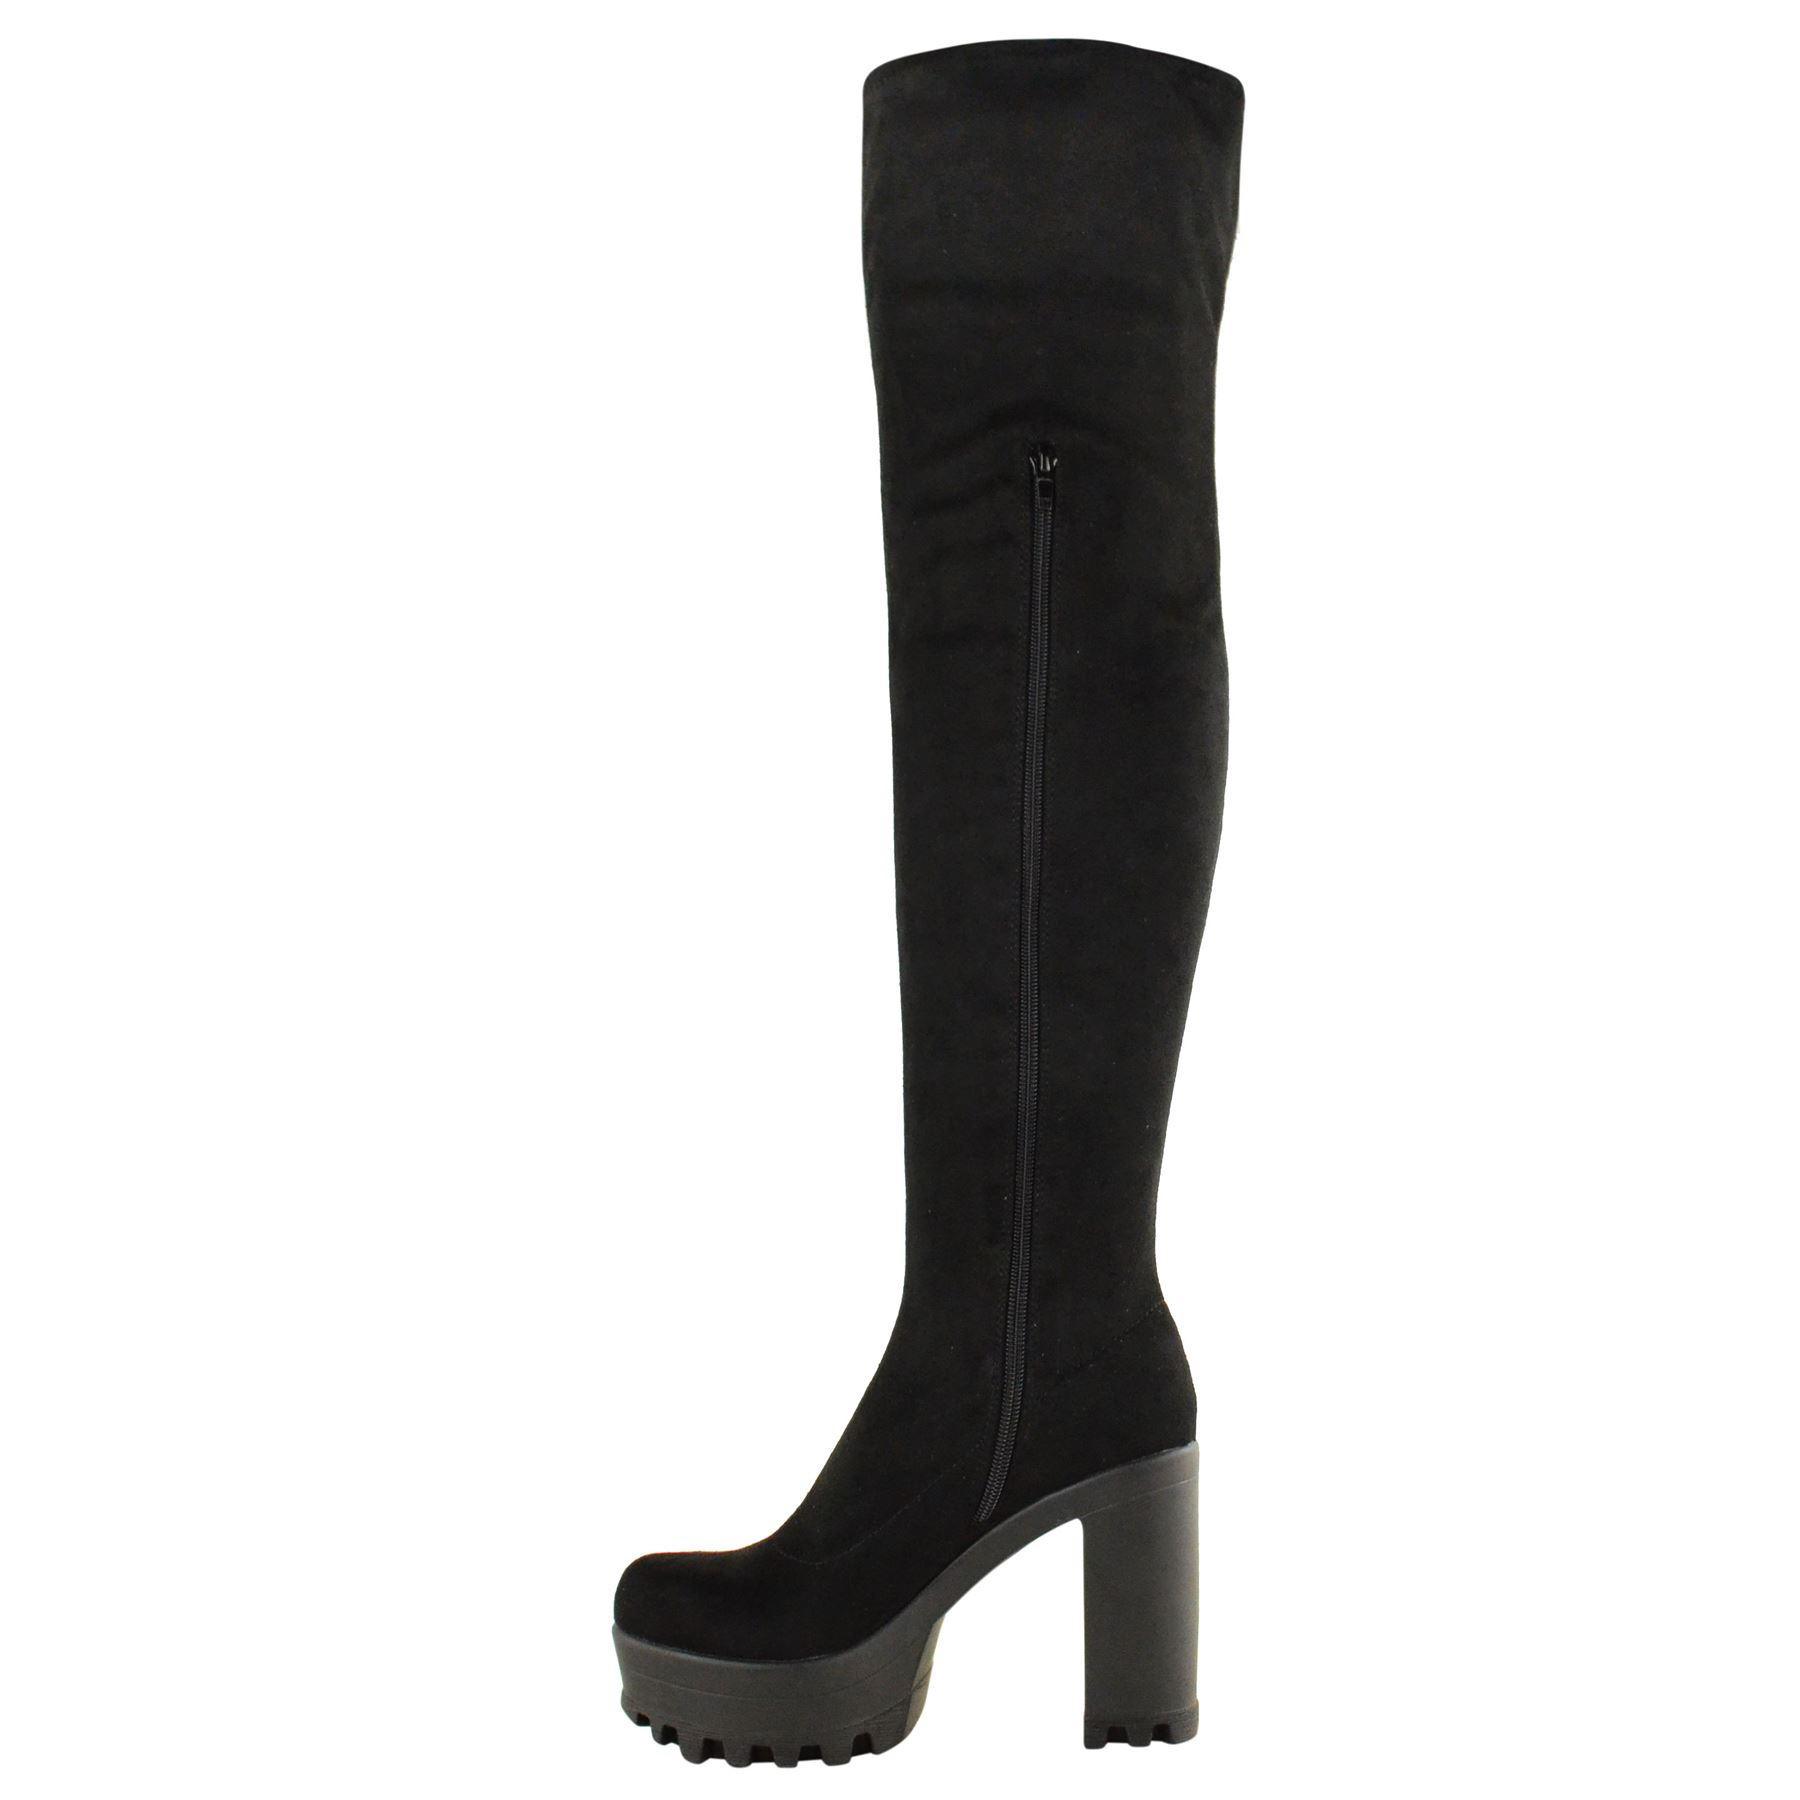 LADIES-WOMENS-OVER-THE-KNEE-THIGH-HIGH-CHUNKY-PLATFORM-BLOCK-HEEL-BOOTS-STRETCH